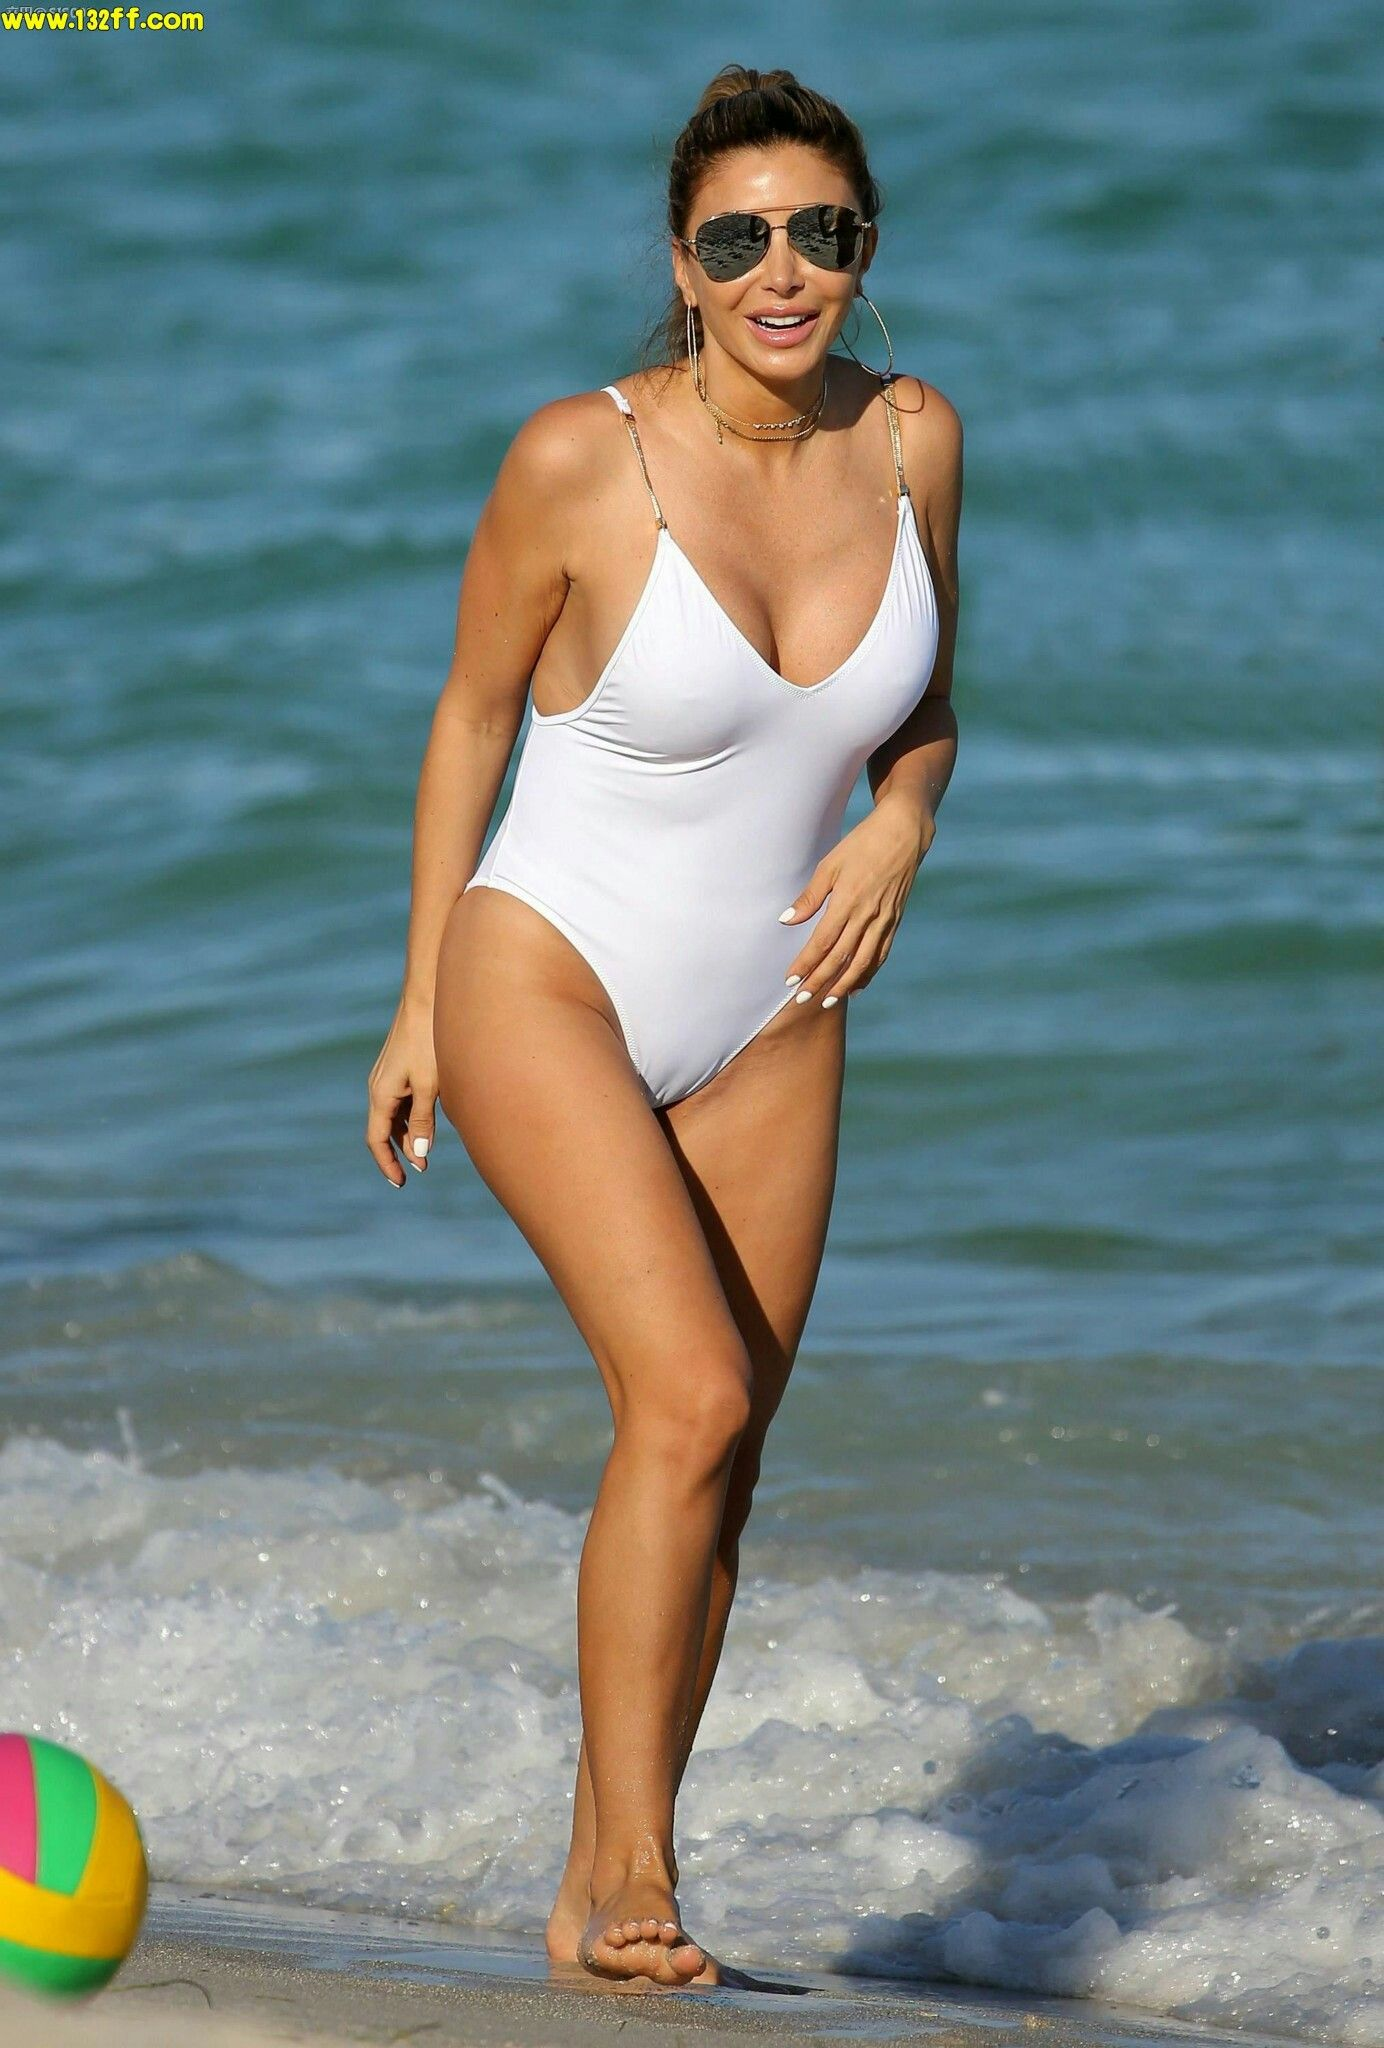 Hot Larsa Pippen nude (87 photos), Ass, Bikini, Twitter, braless 2015